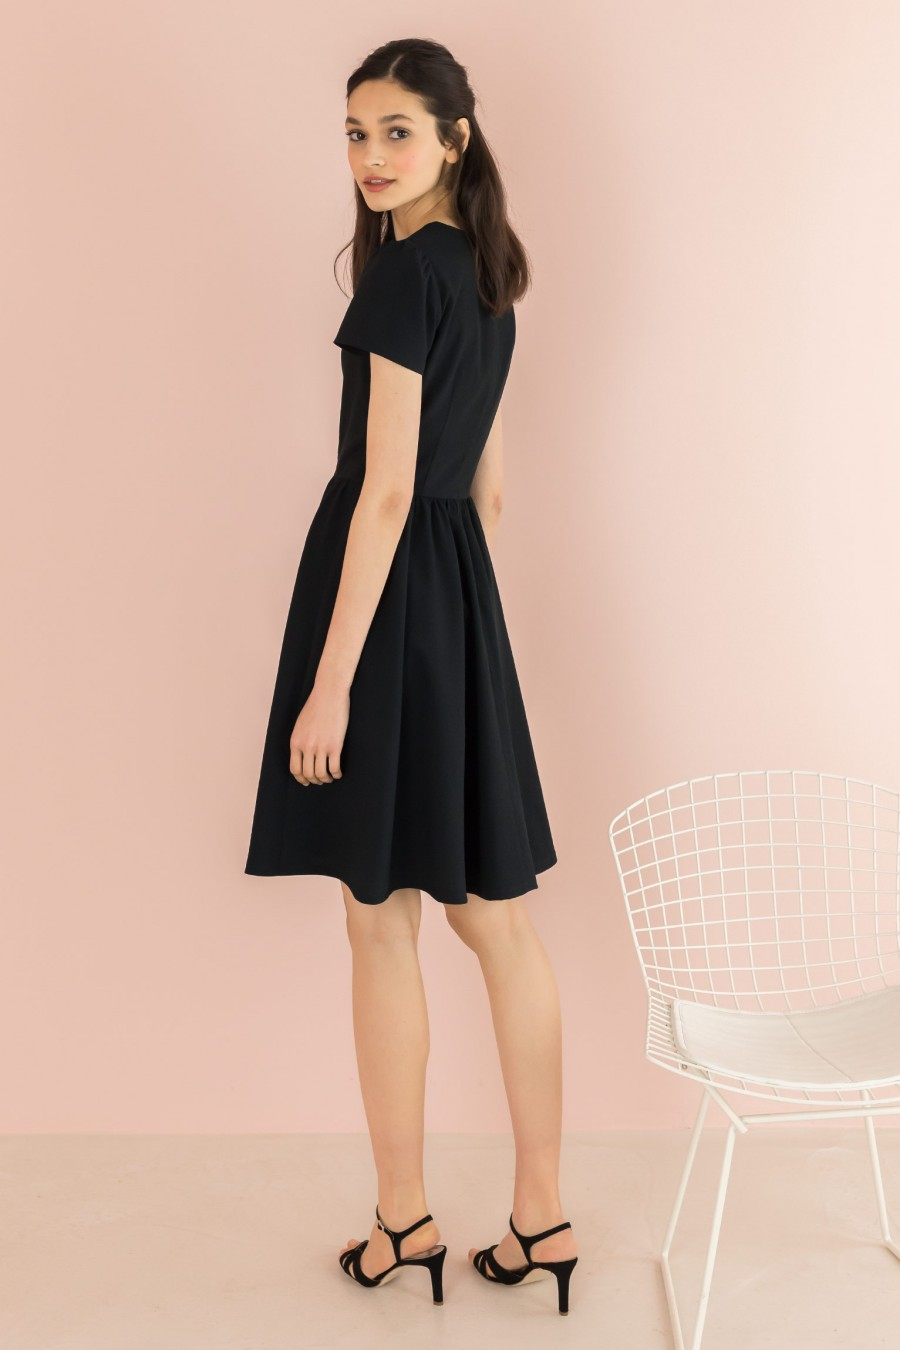 black dress with short sleeves